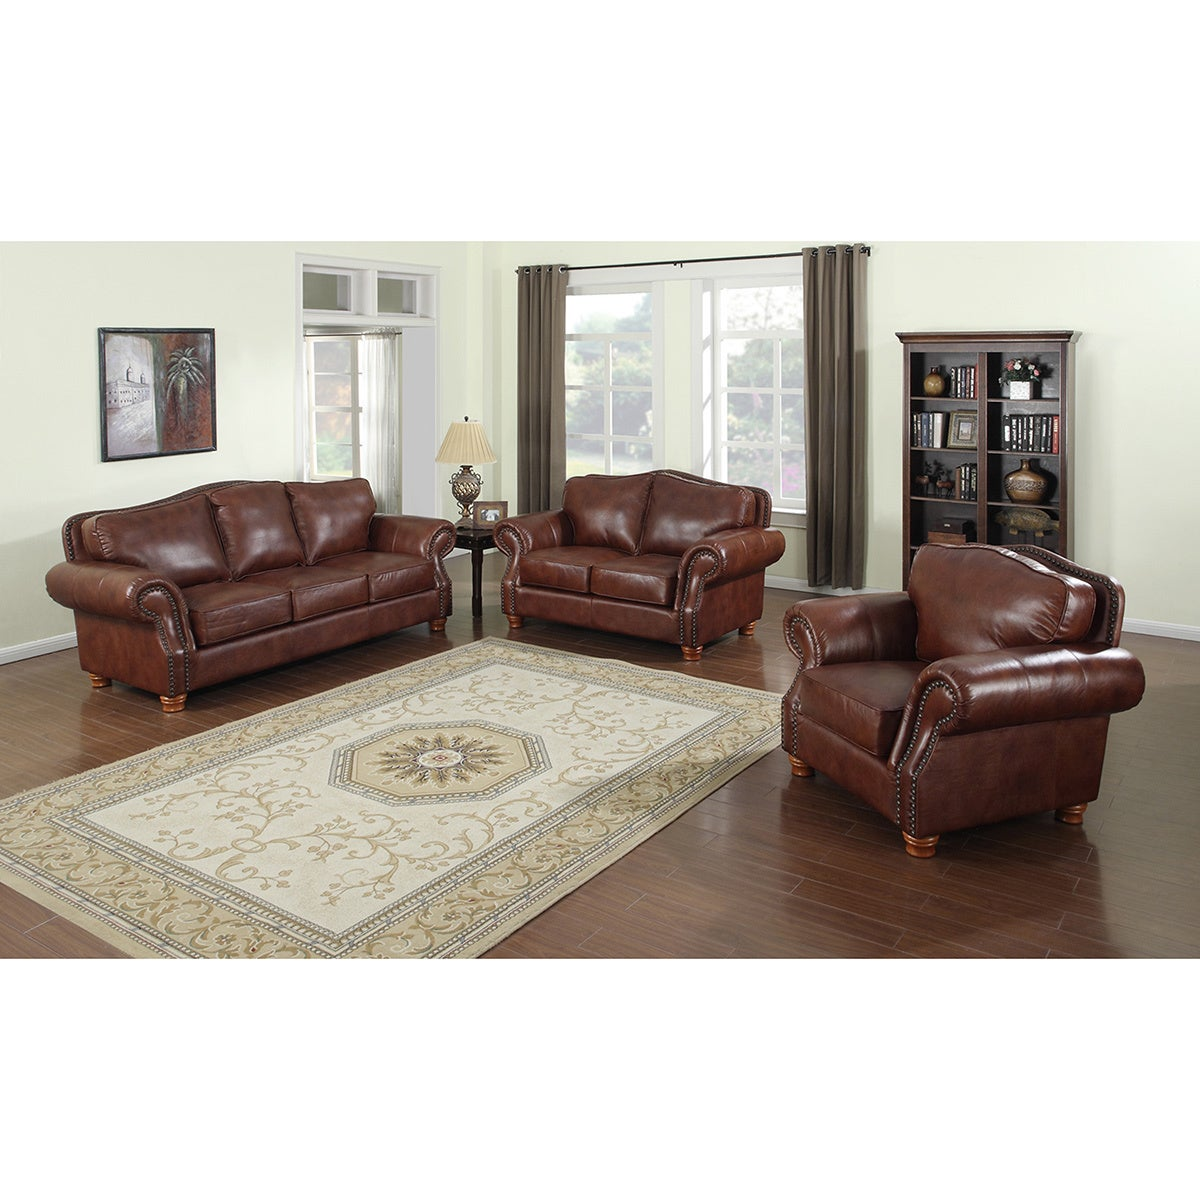 Brandon Distressed Whiskey Italian Leather Sofa Set